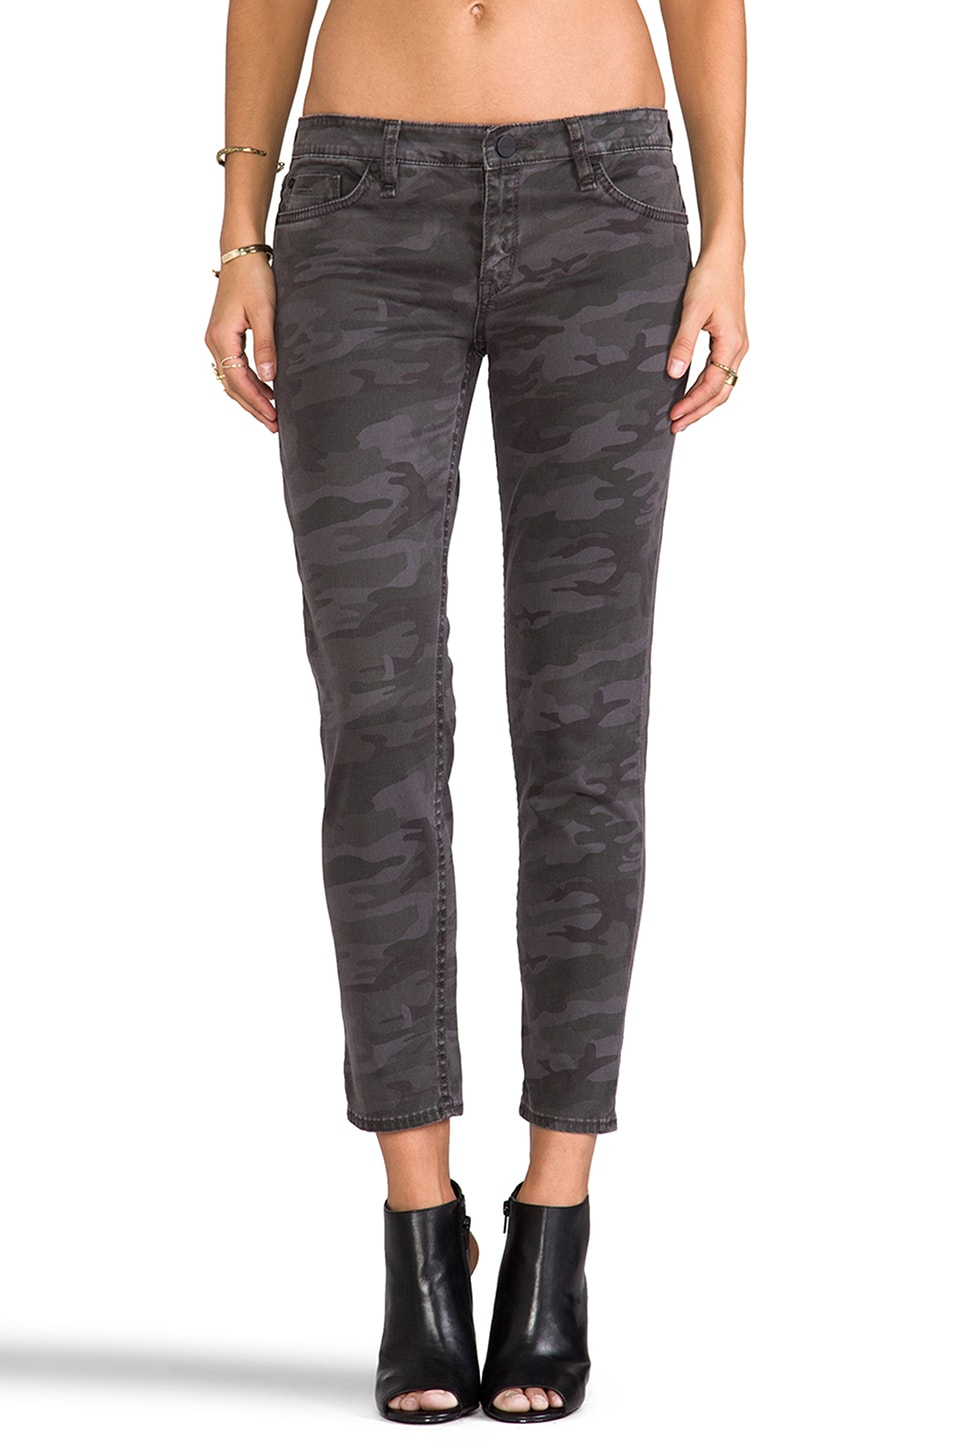 Sanctuary Camo Charmer Capri in Charcoal